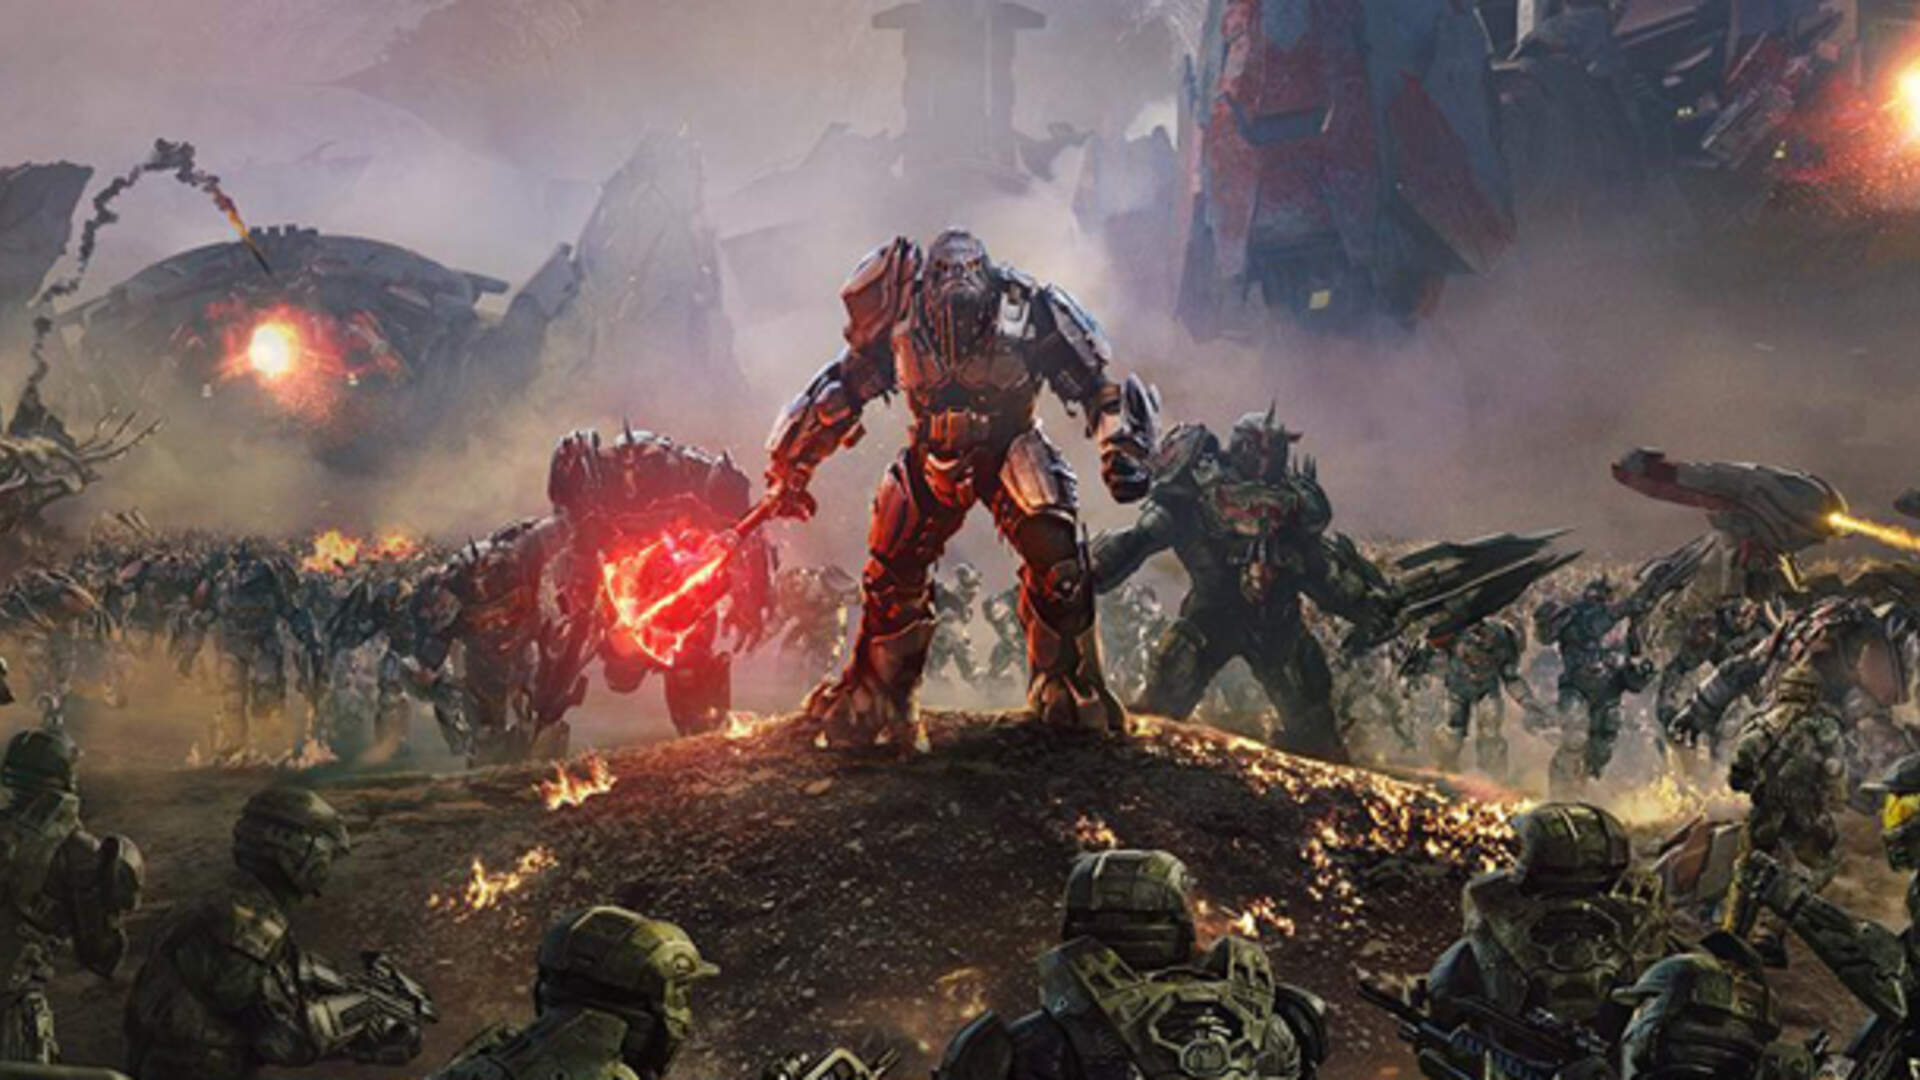 Halo Wars 2 Transcribes Your Trash Talk in Real-Time